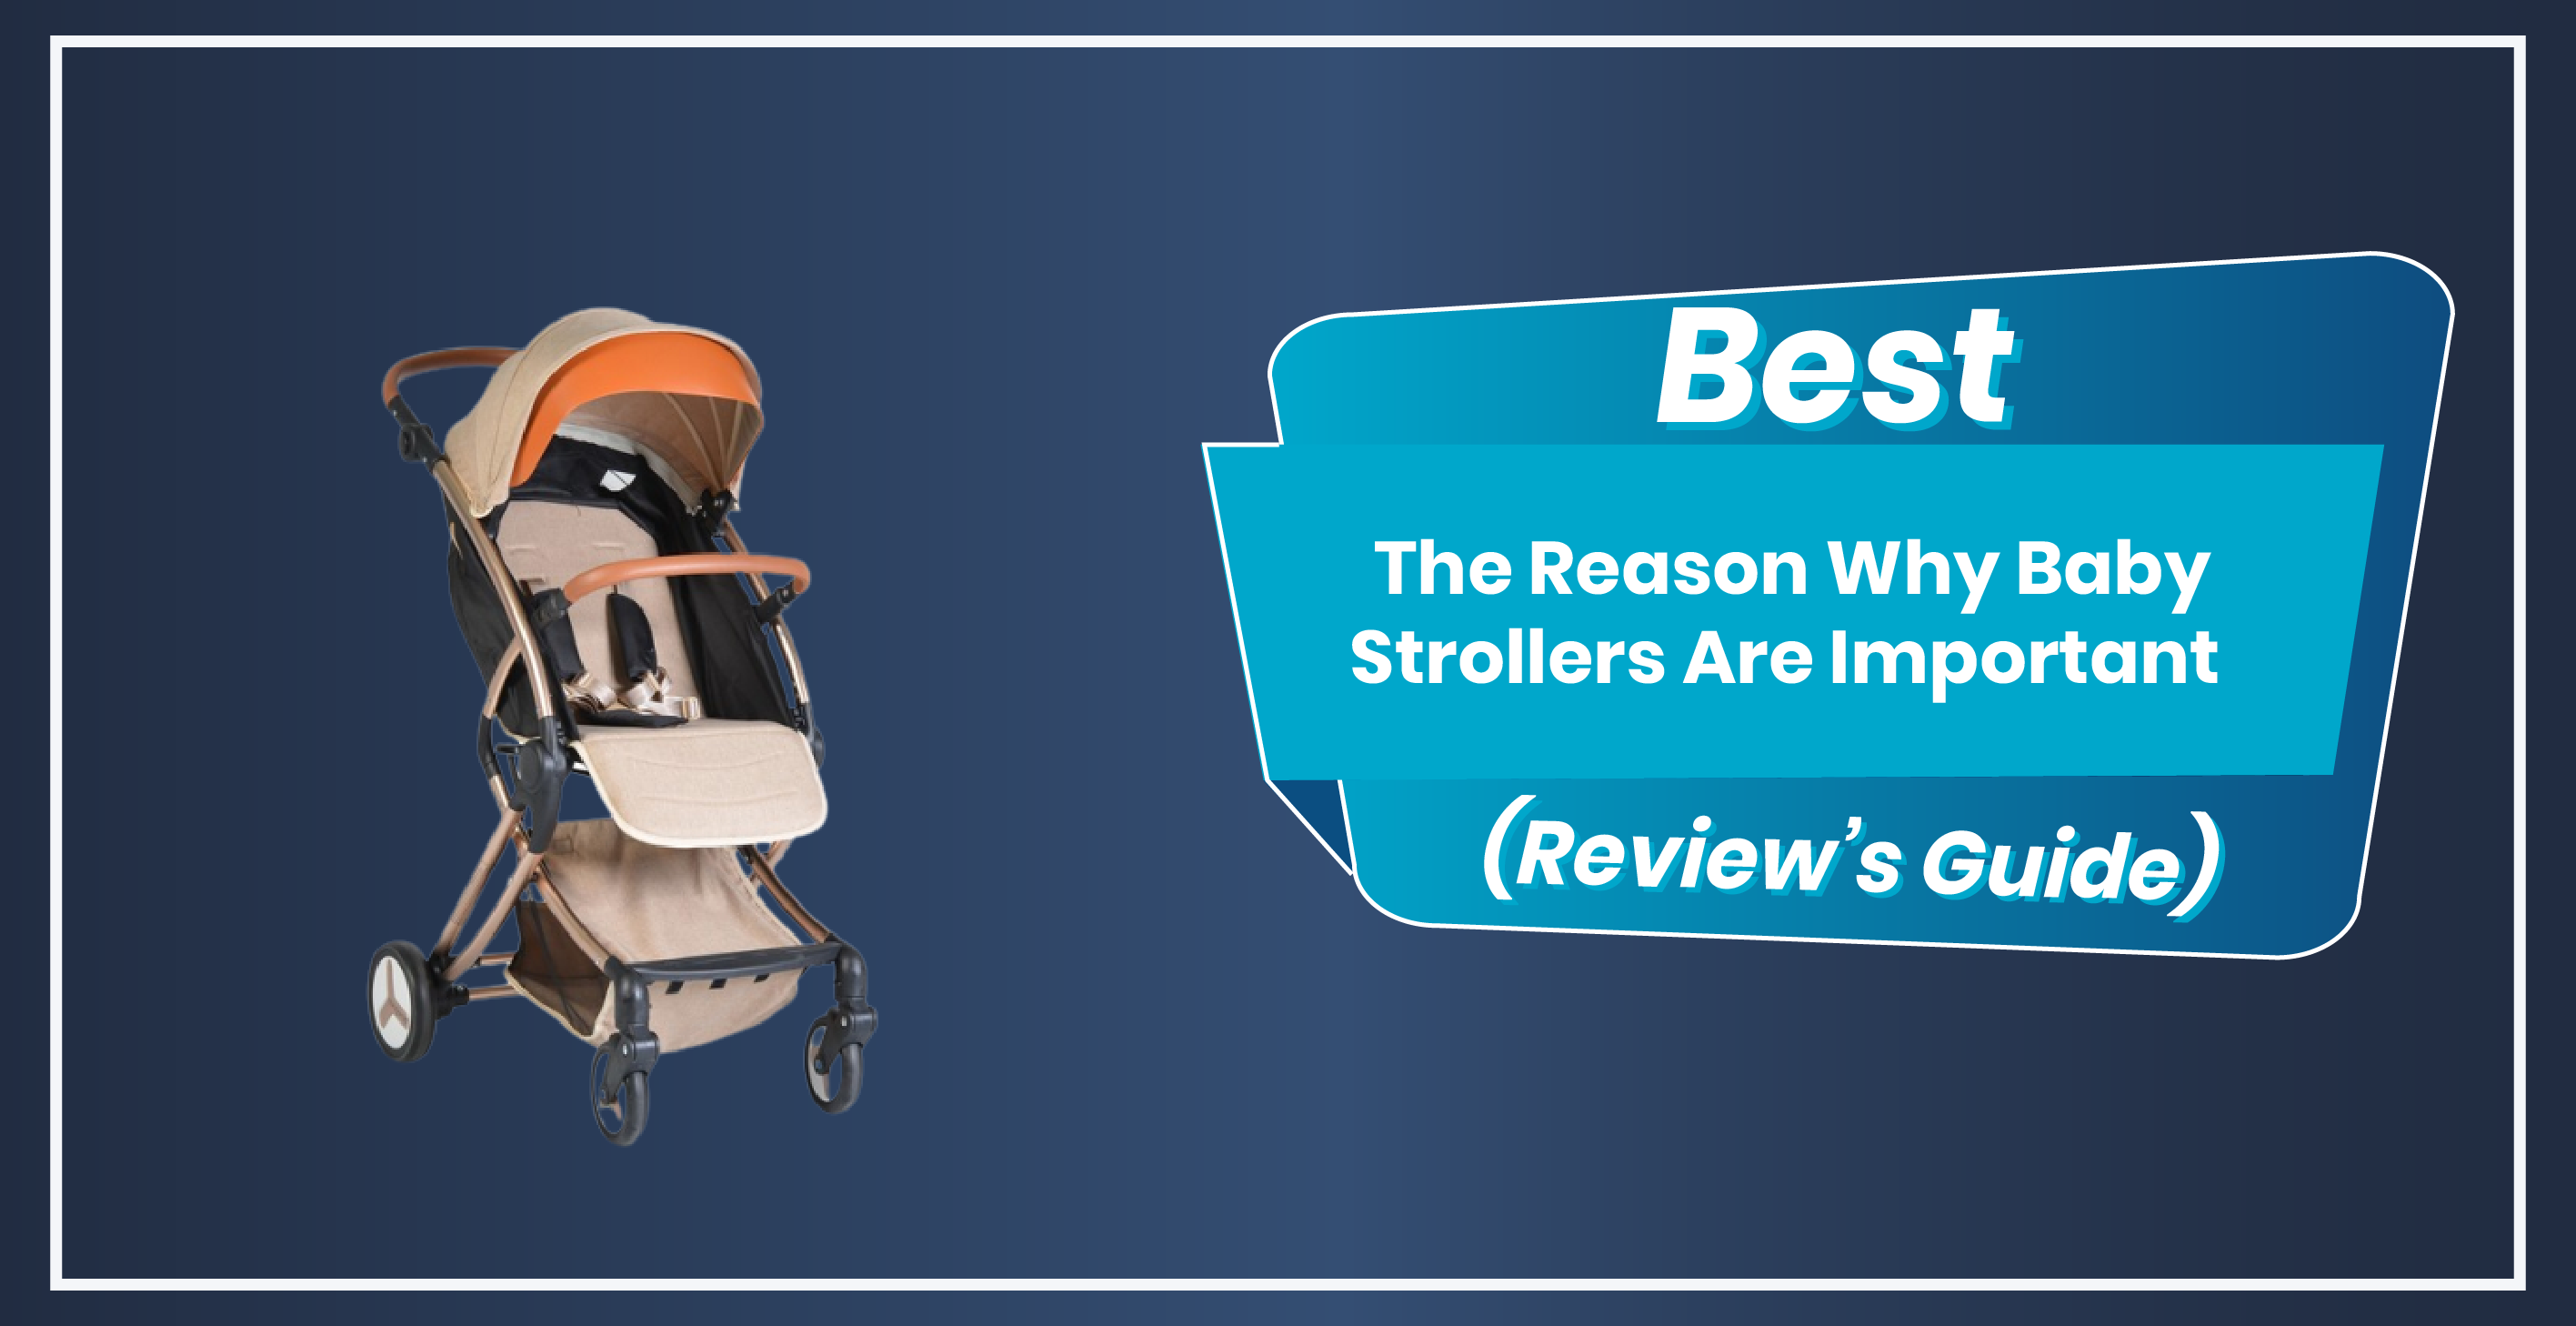 The Reason Why Baby Strollers Are Important